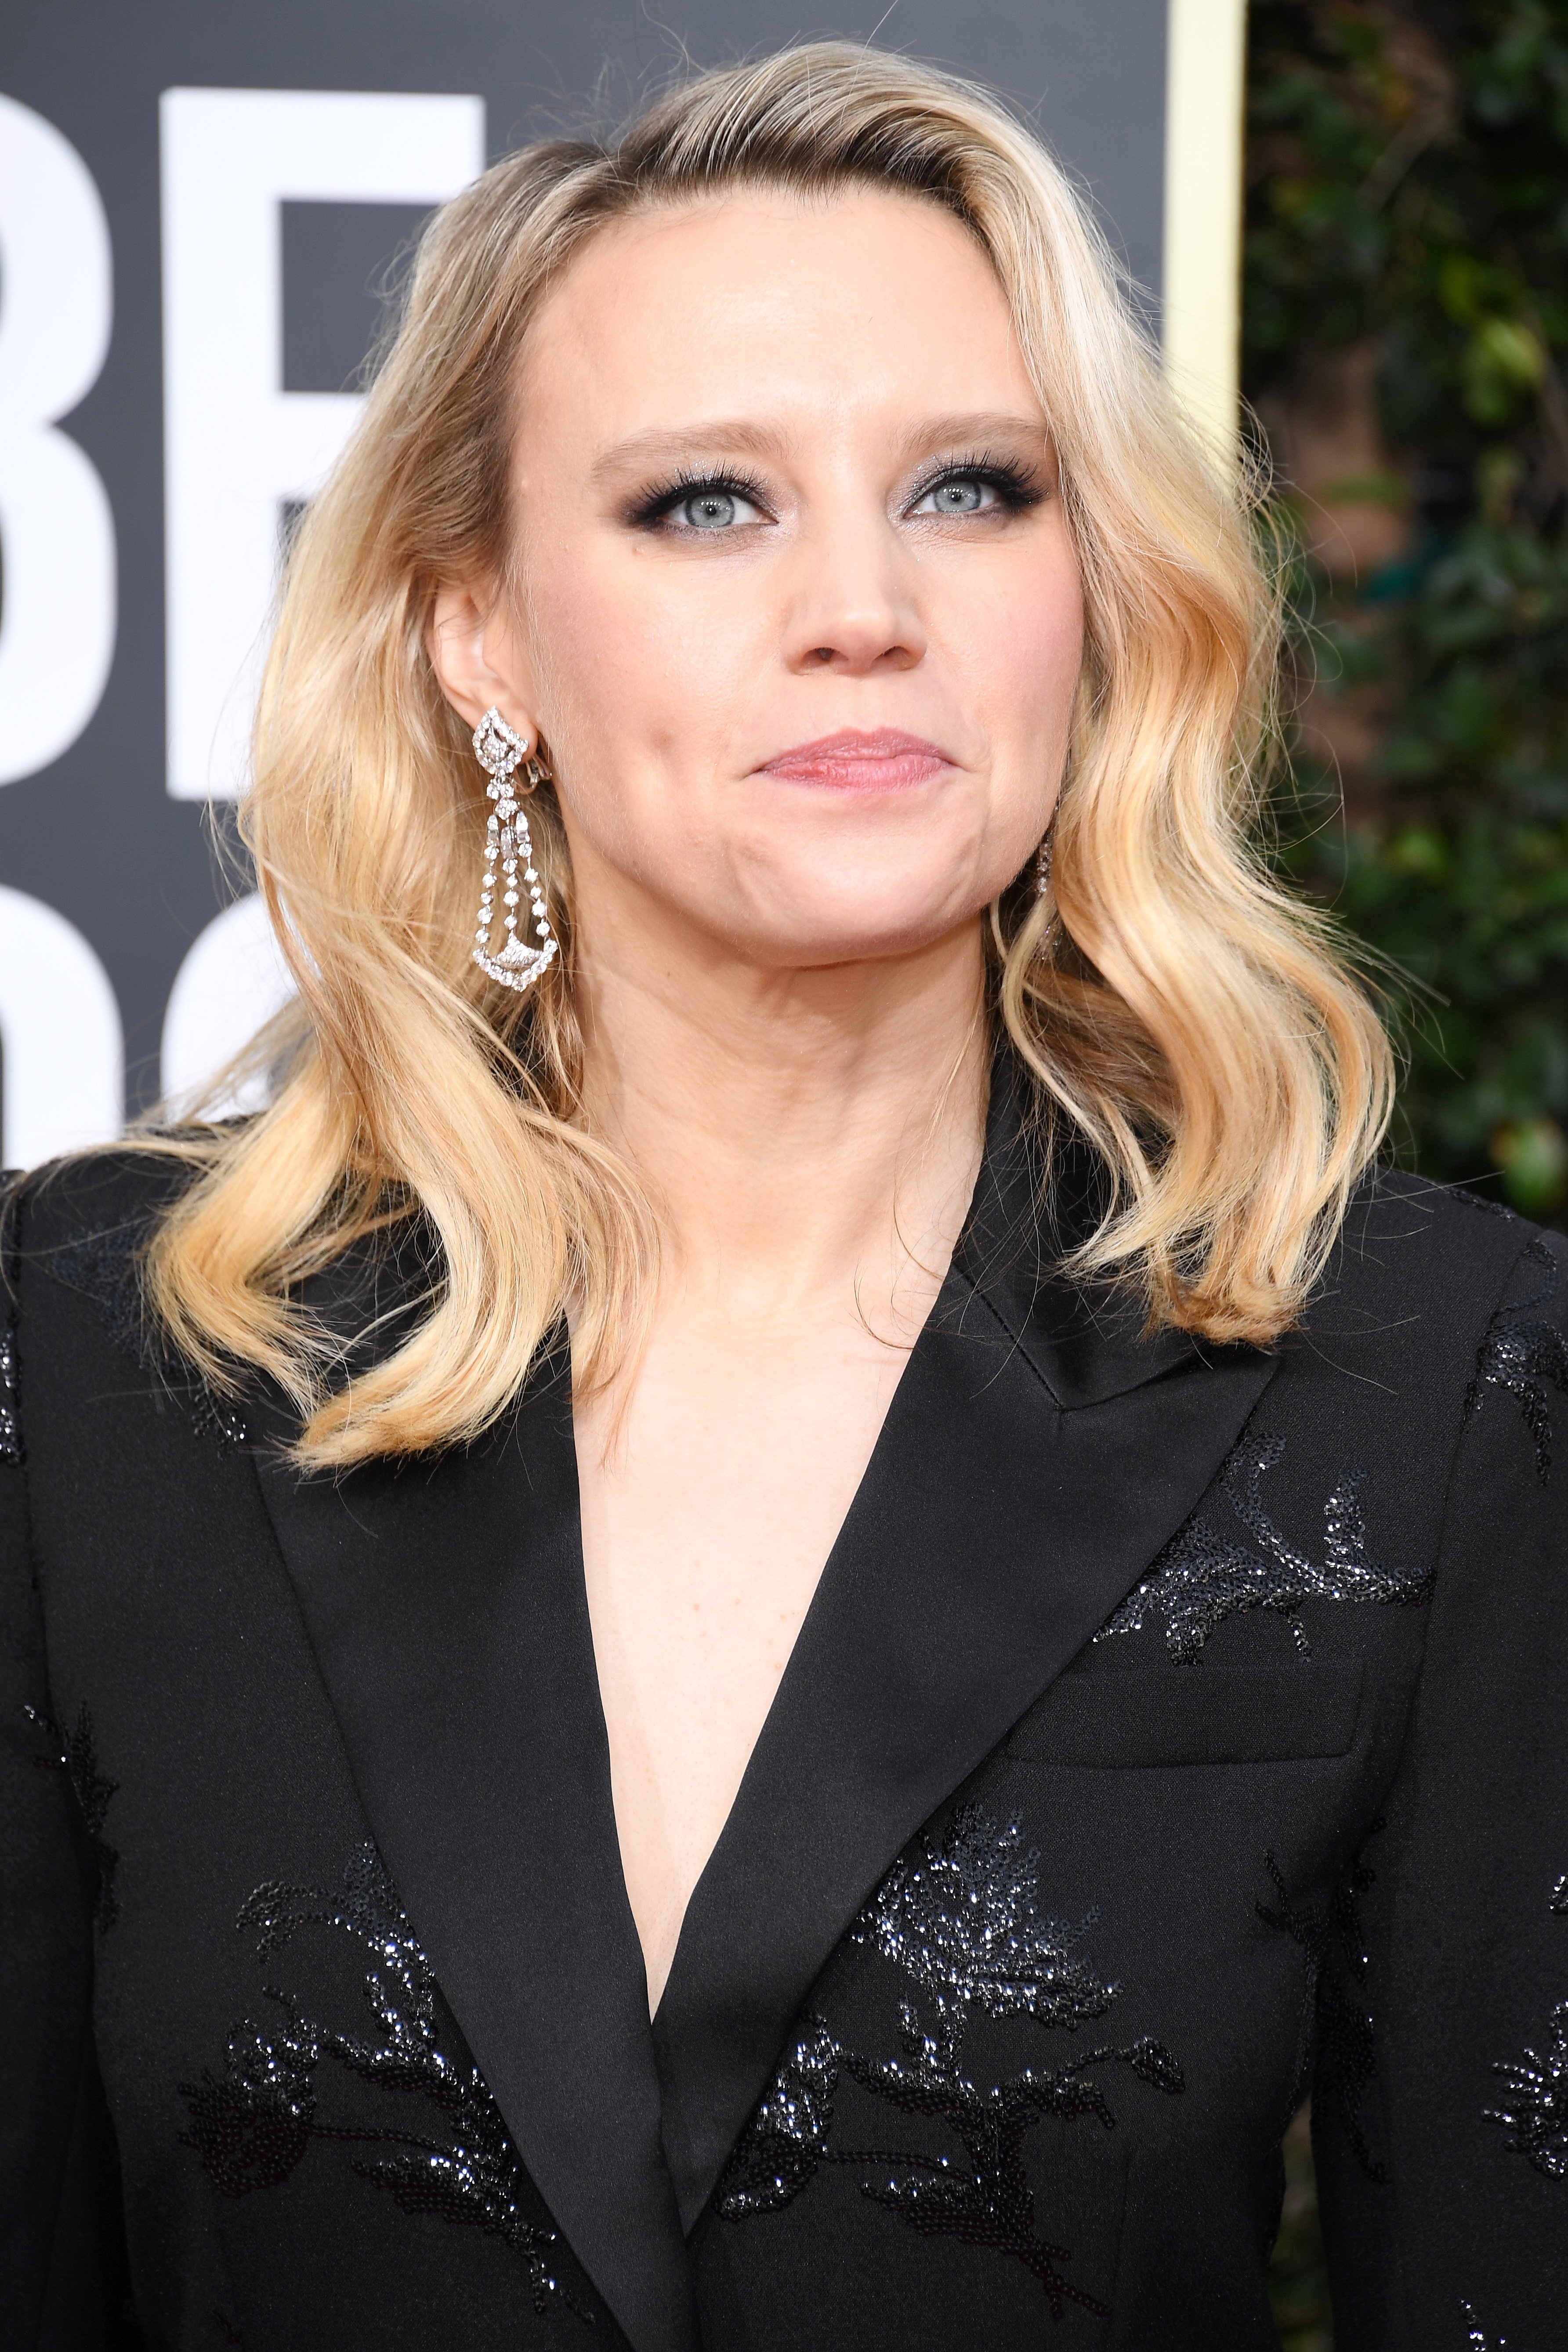 Kate McKinnon at the 77th Annual Golden Globe Awards at The Beverly Hilton Hotel in Beverly Hills, California | Photo: Daniele Venturelli/WireImage